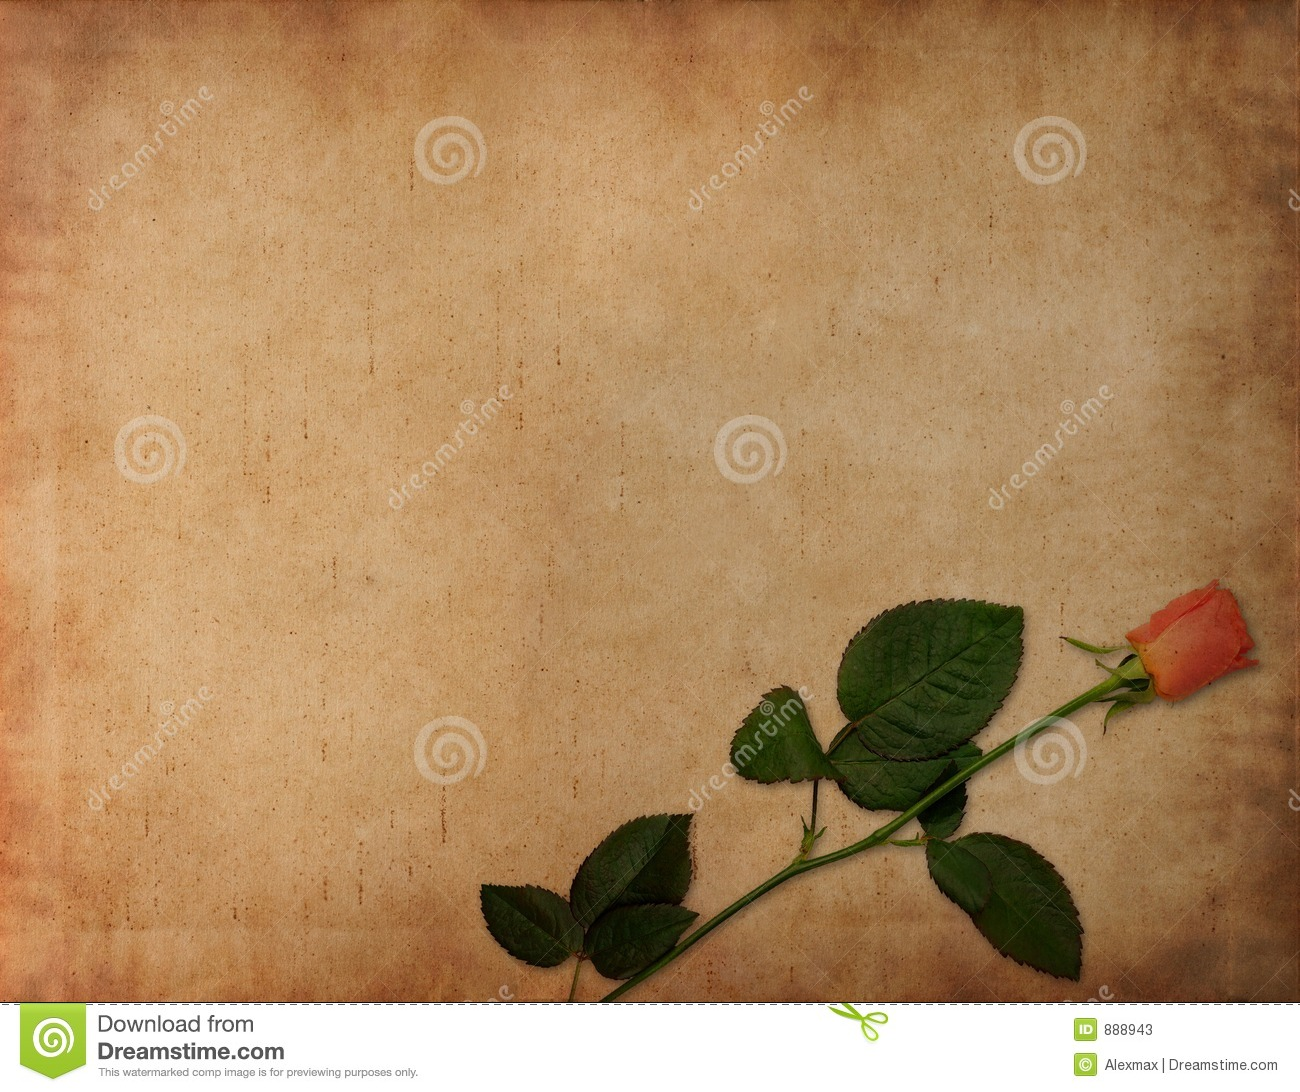 Ancient Love Letter Background Stock Photos - Image: 888943